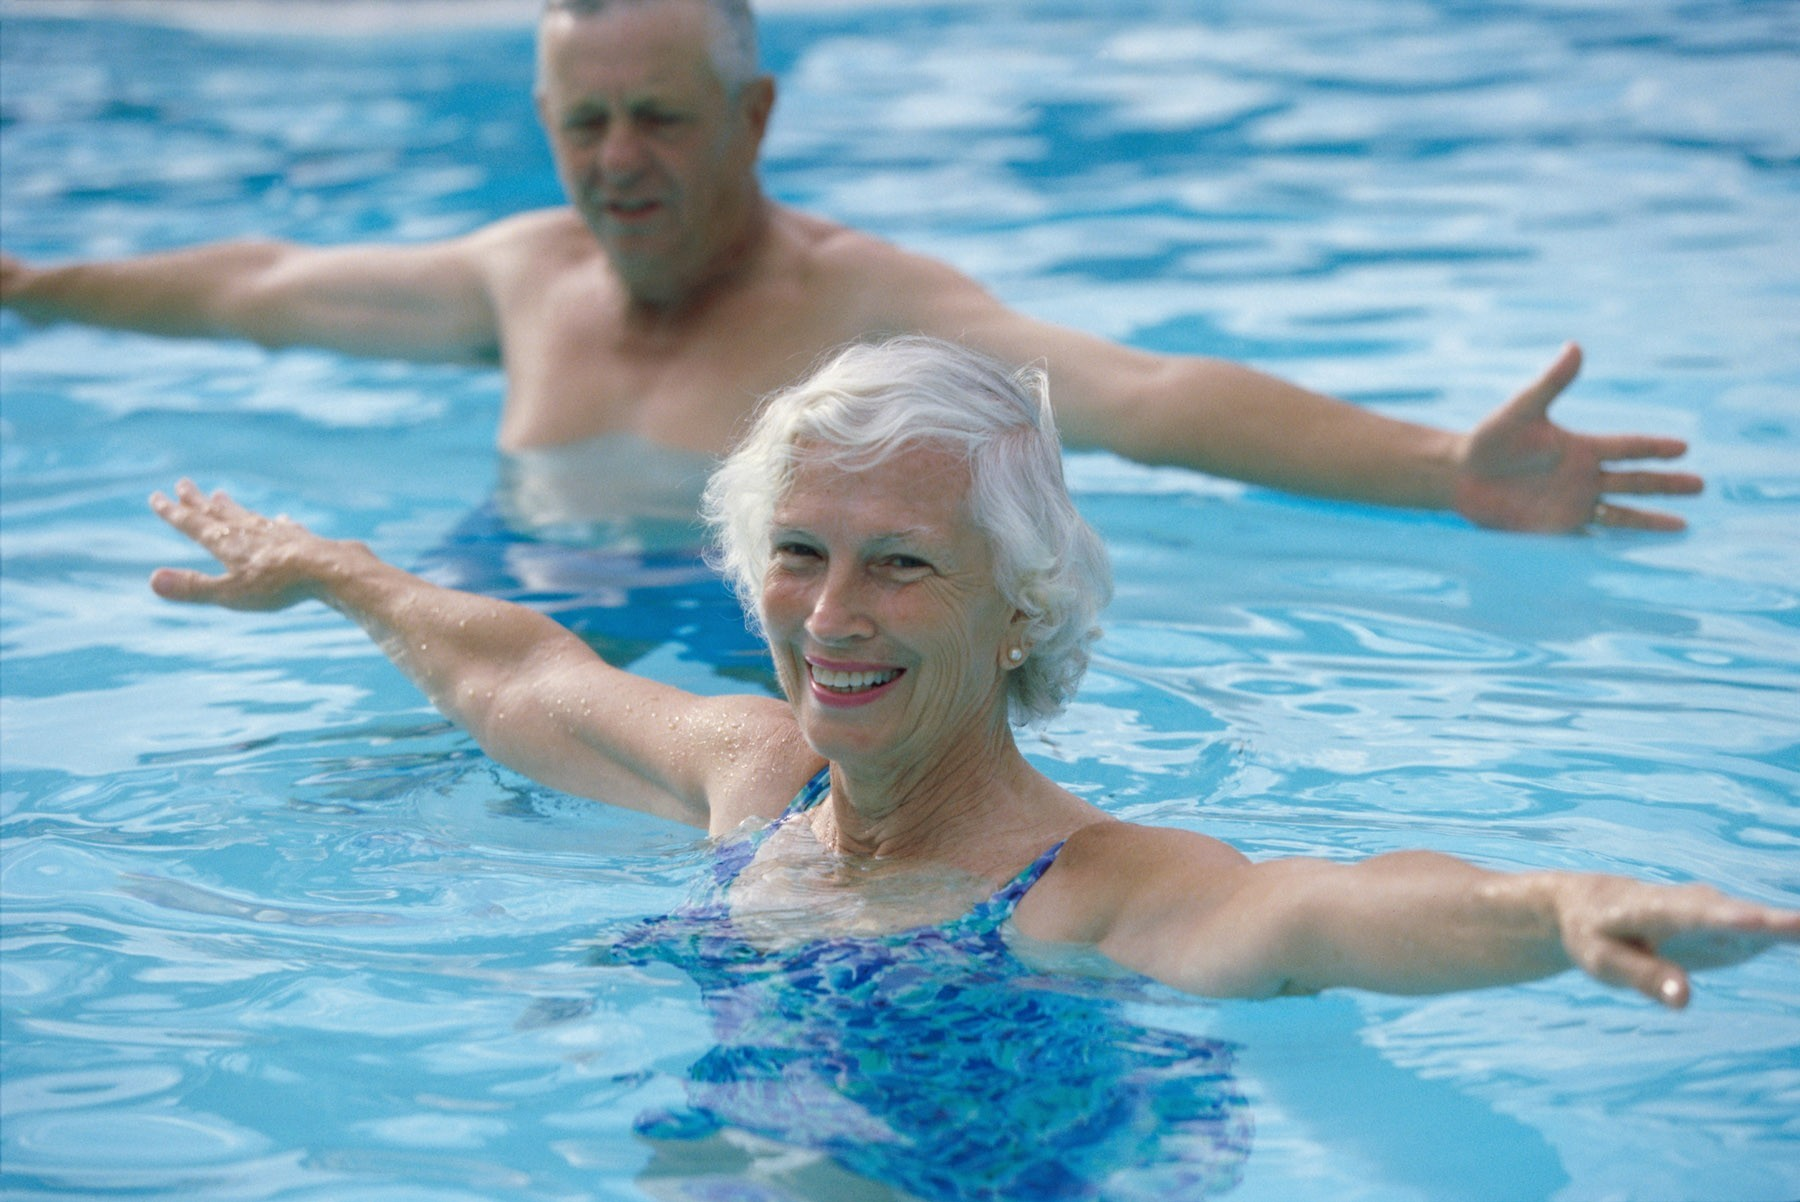 Swimming at old age